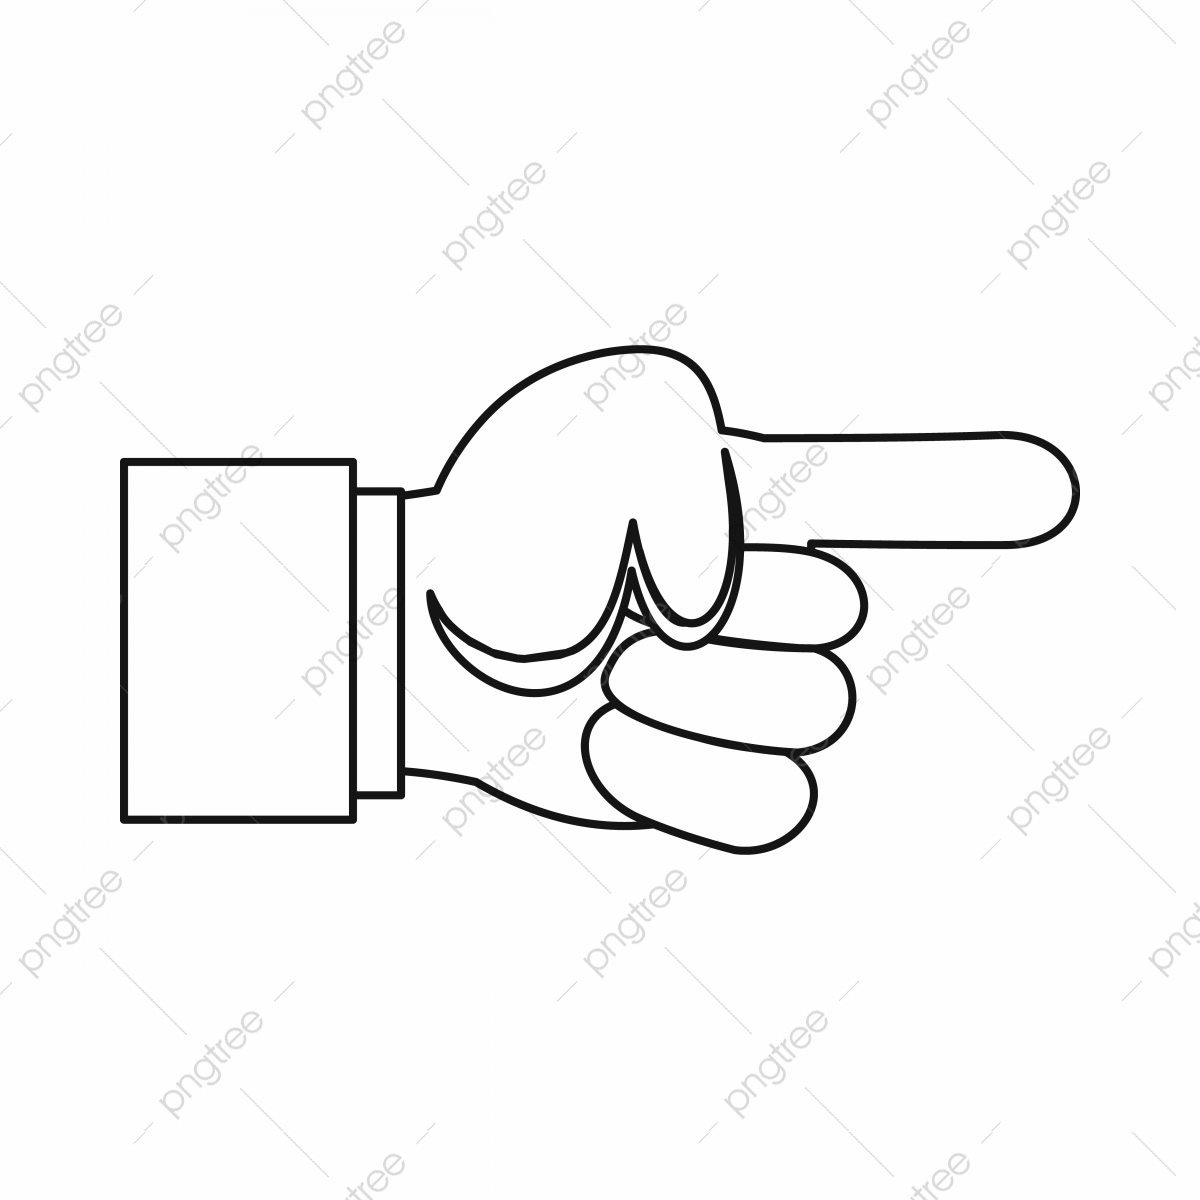 pointing hand png images vector and psd files free download on pngtree https pngtree com freepng pointing hand gesture icon outline style 5098460 html